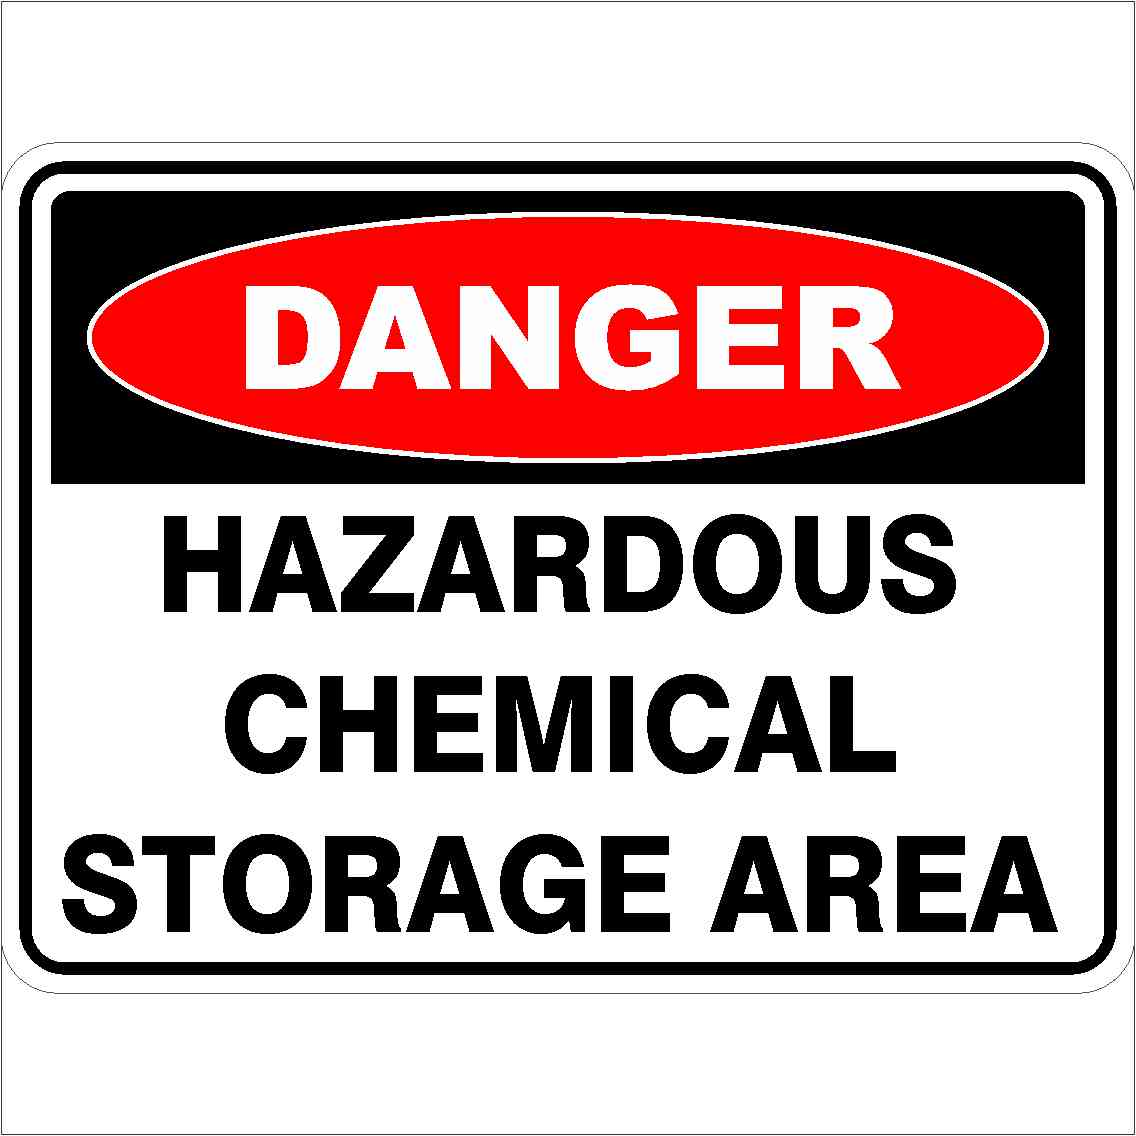 Hazardous Chemical Storage Area Discount Safety Signs